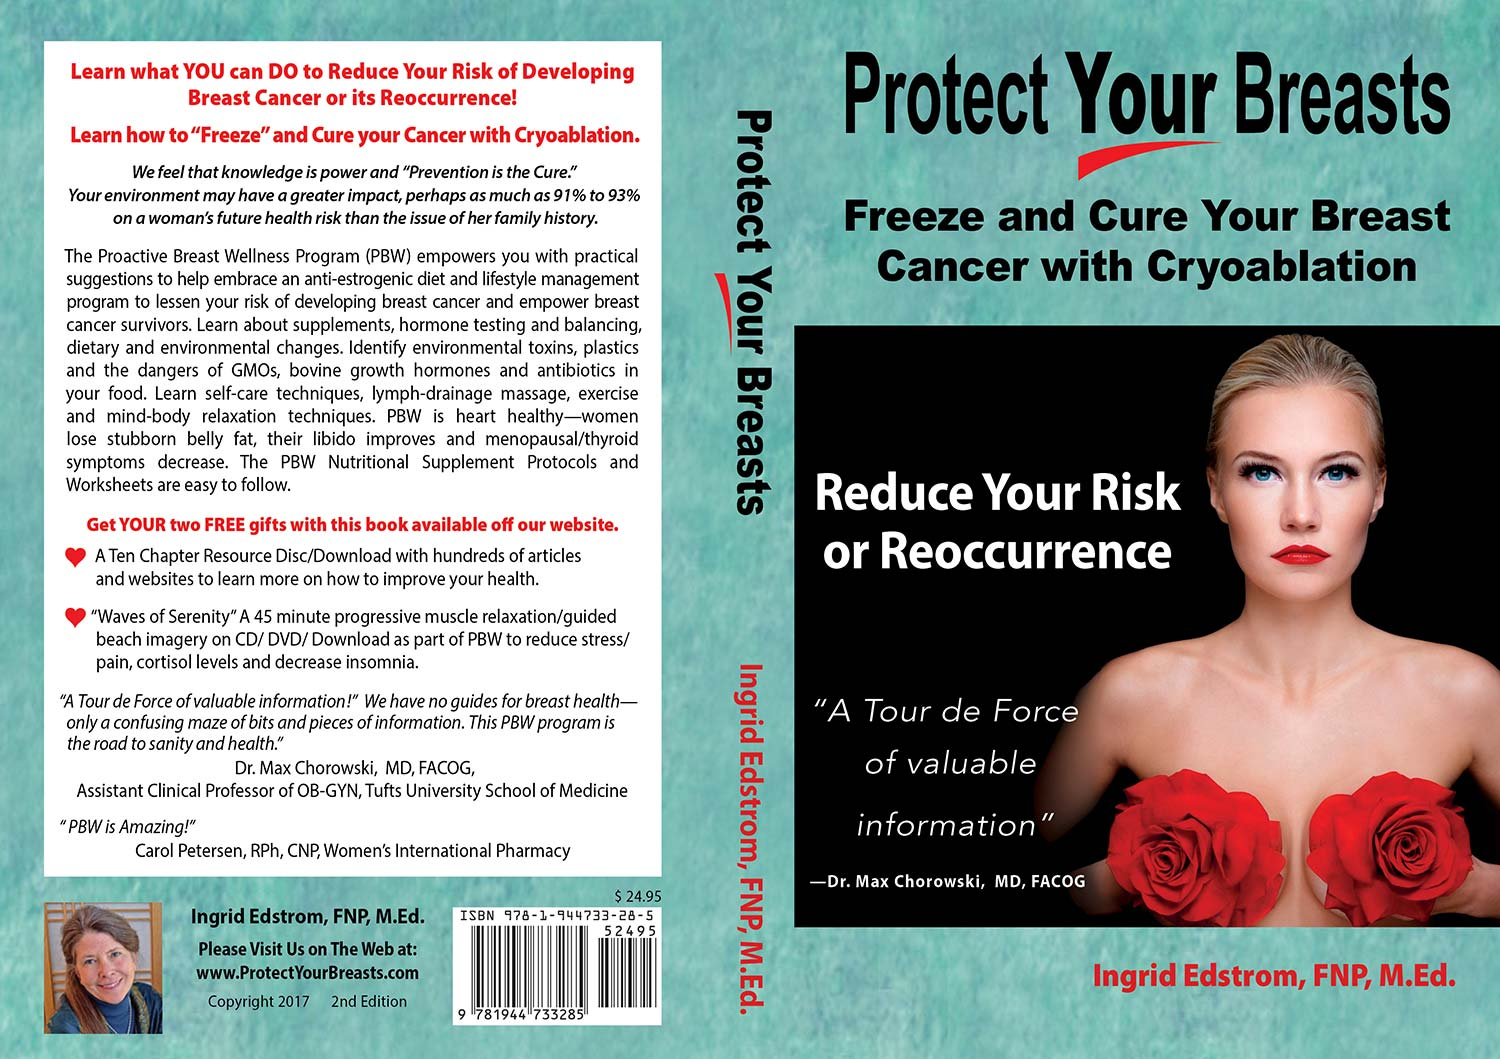 Protect Your Breasts Softcover by Ingrid Edstrom FNP M Ed